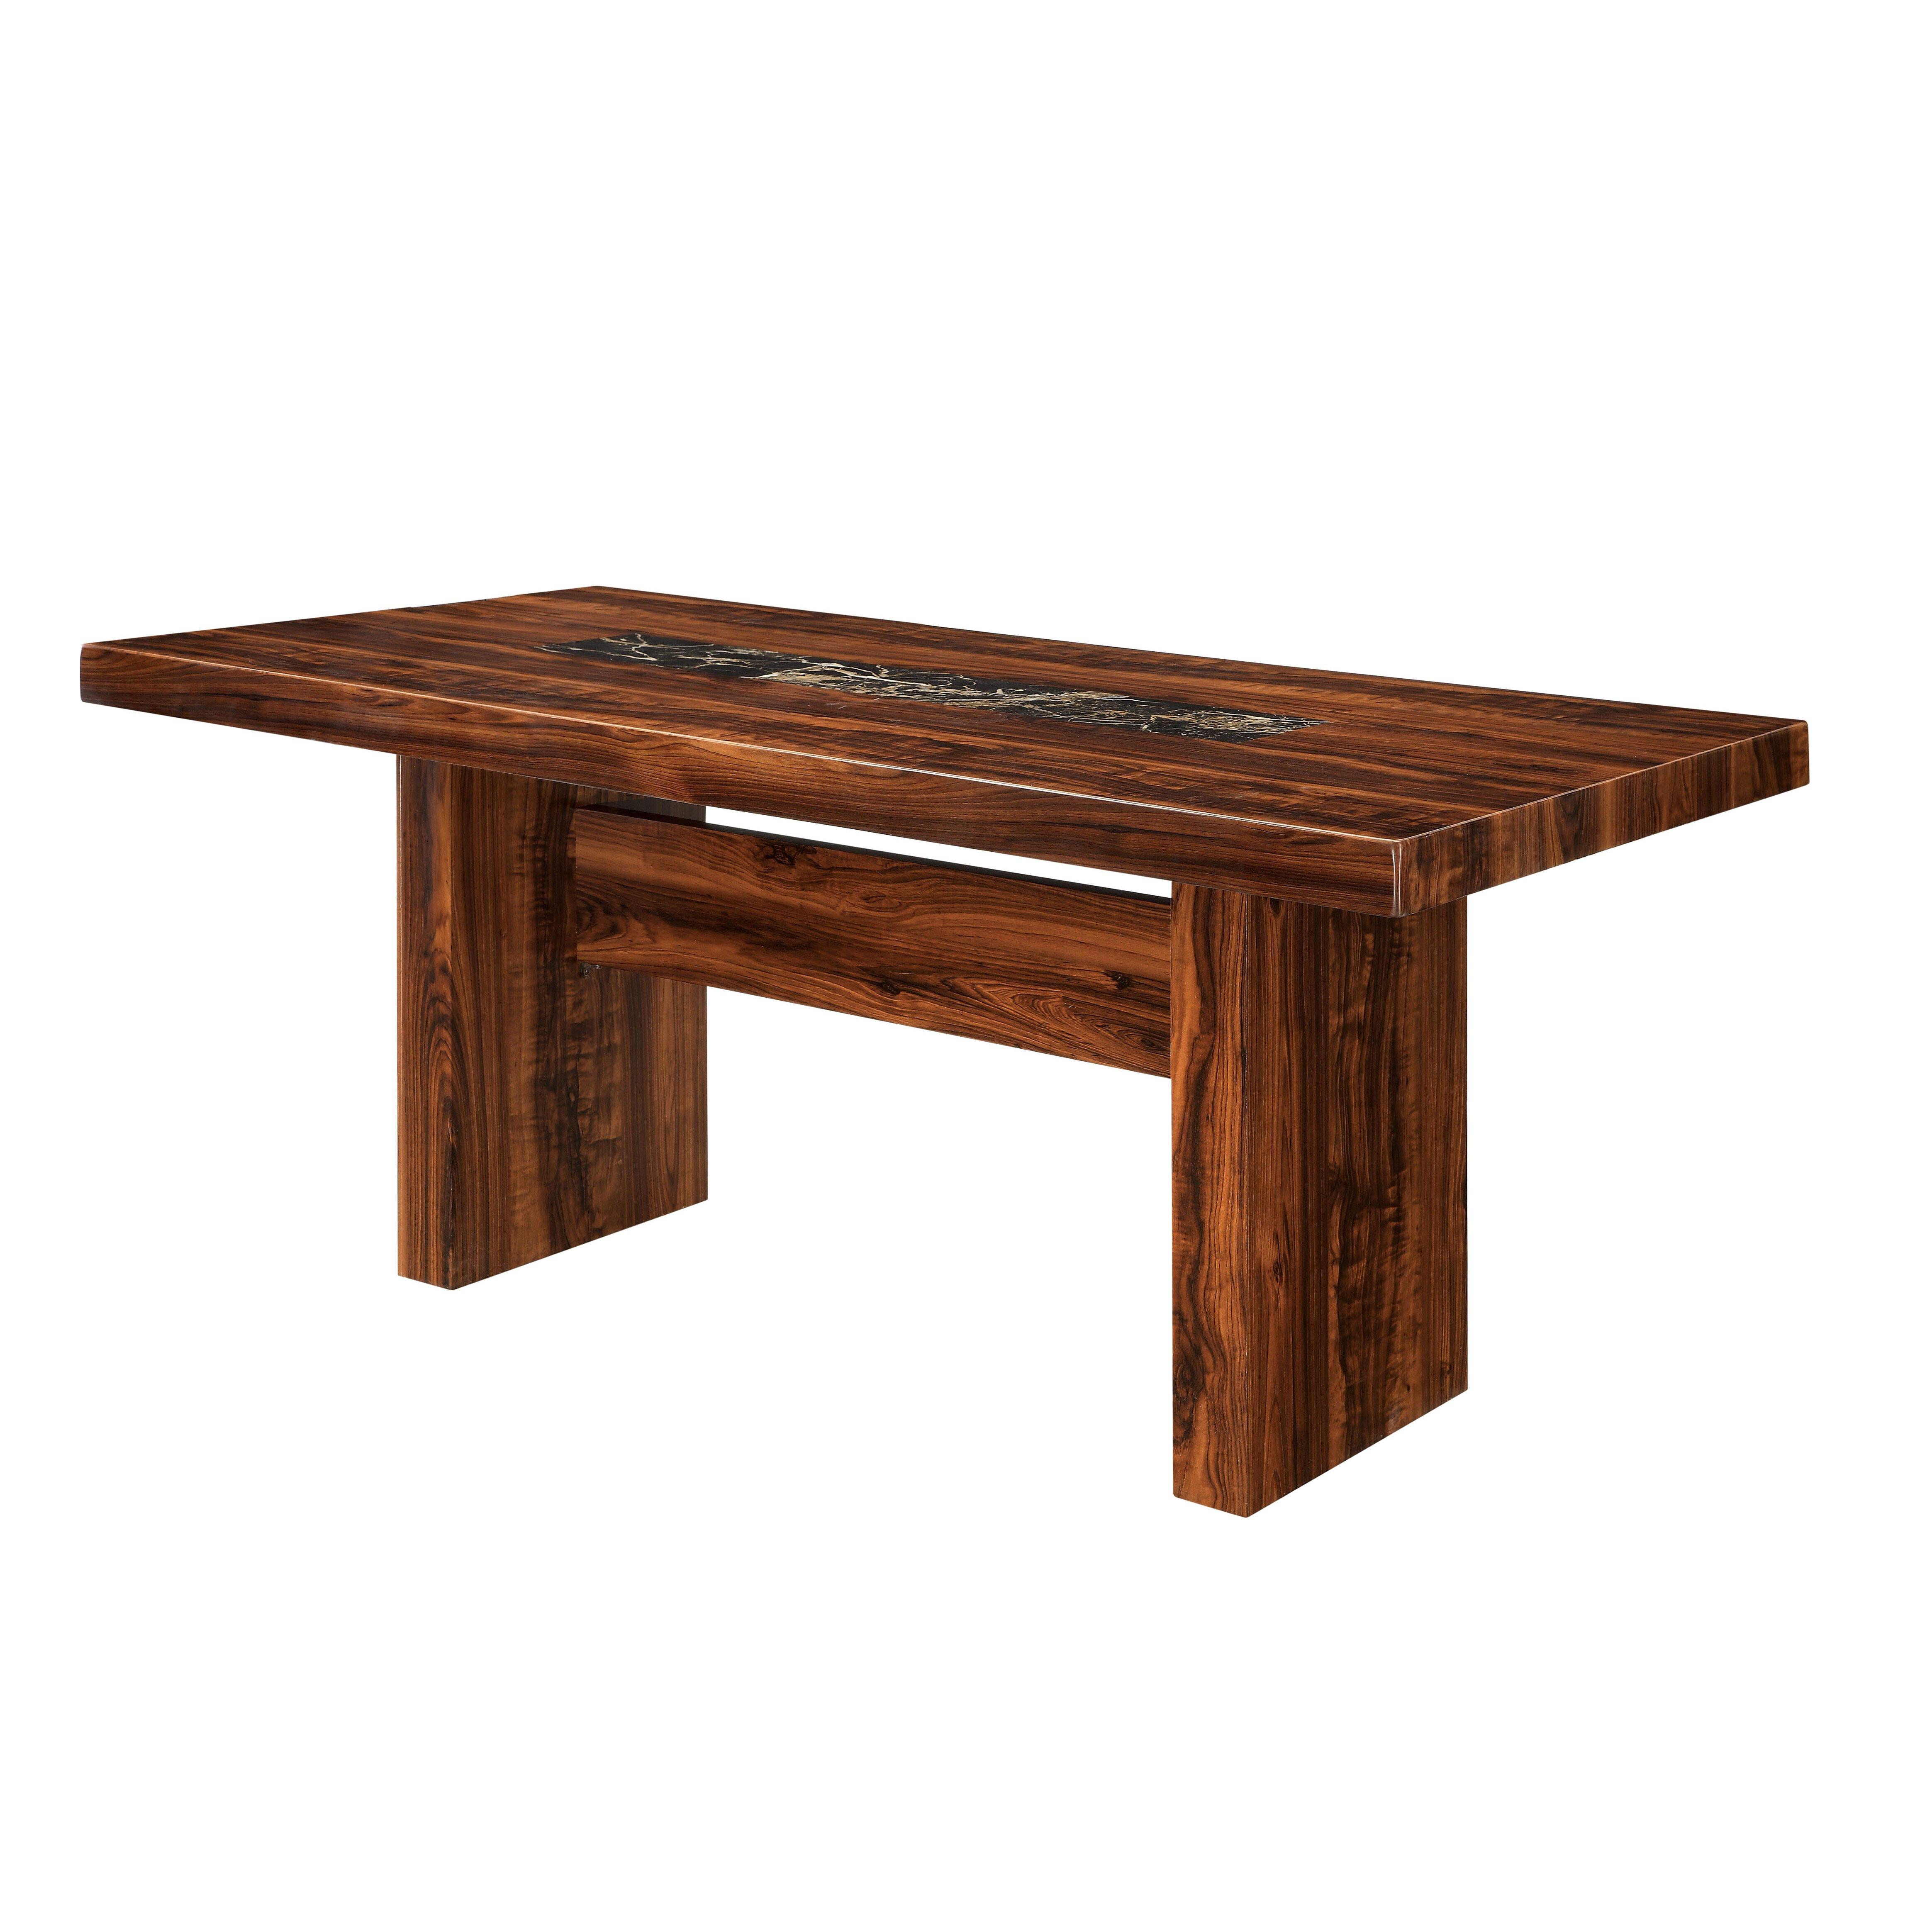 Hokku designs carroll dining table for Wayfair dining table